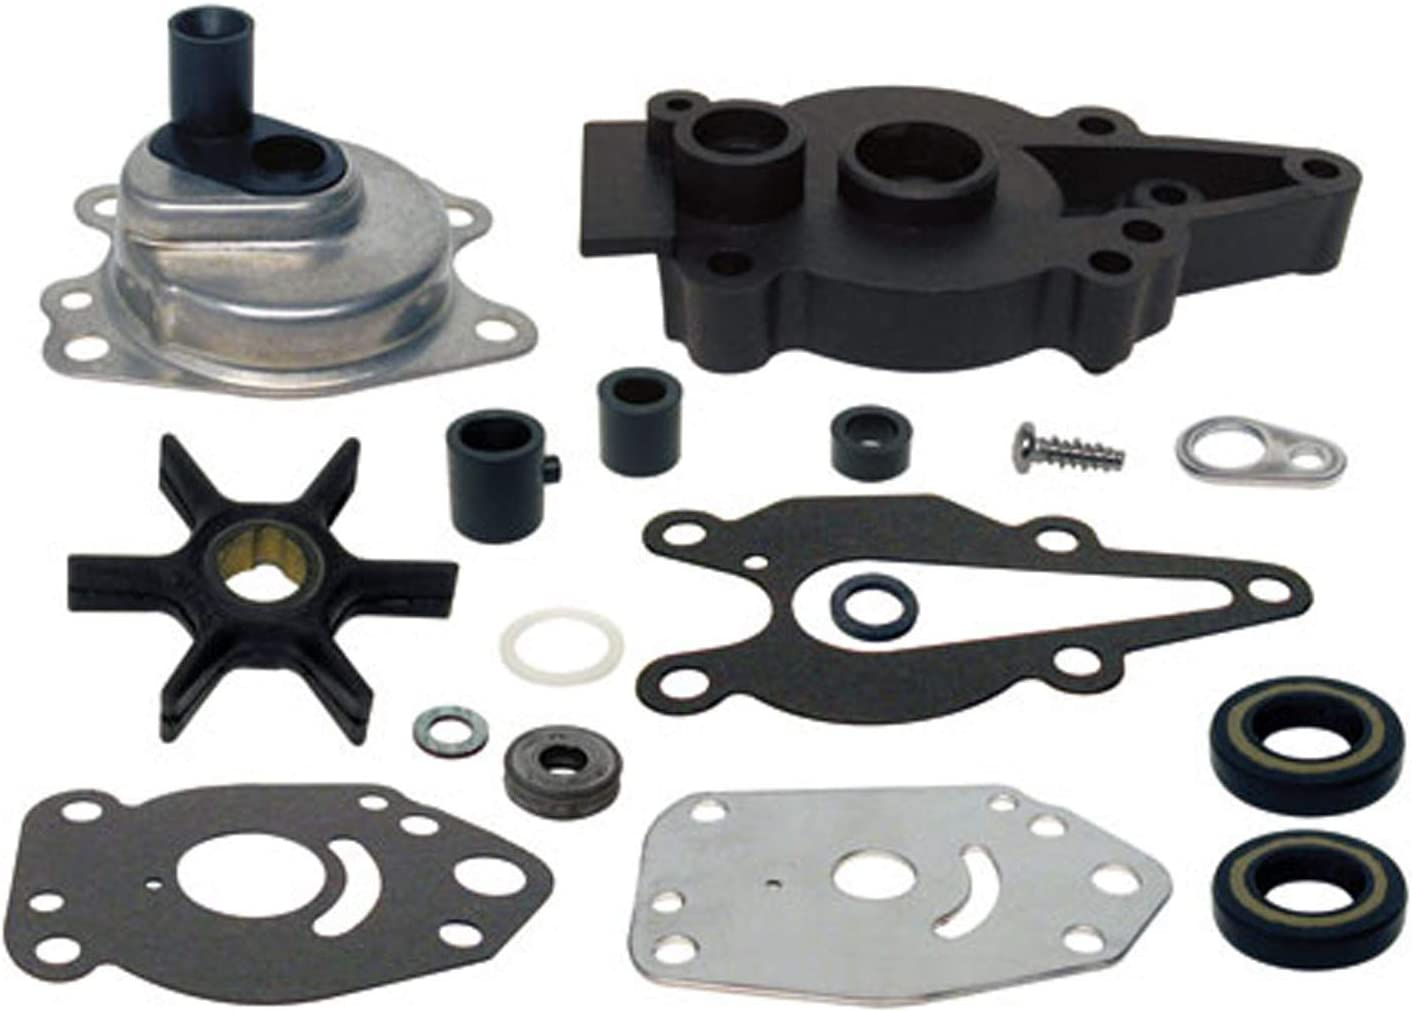 Mercury 9.9 15HP Outboard Parts Water Pump Impeller Kit Replacement 46-42089A5